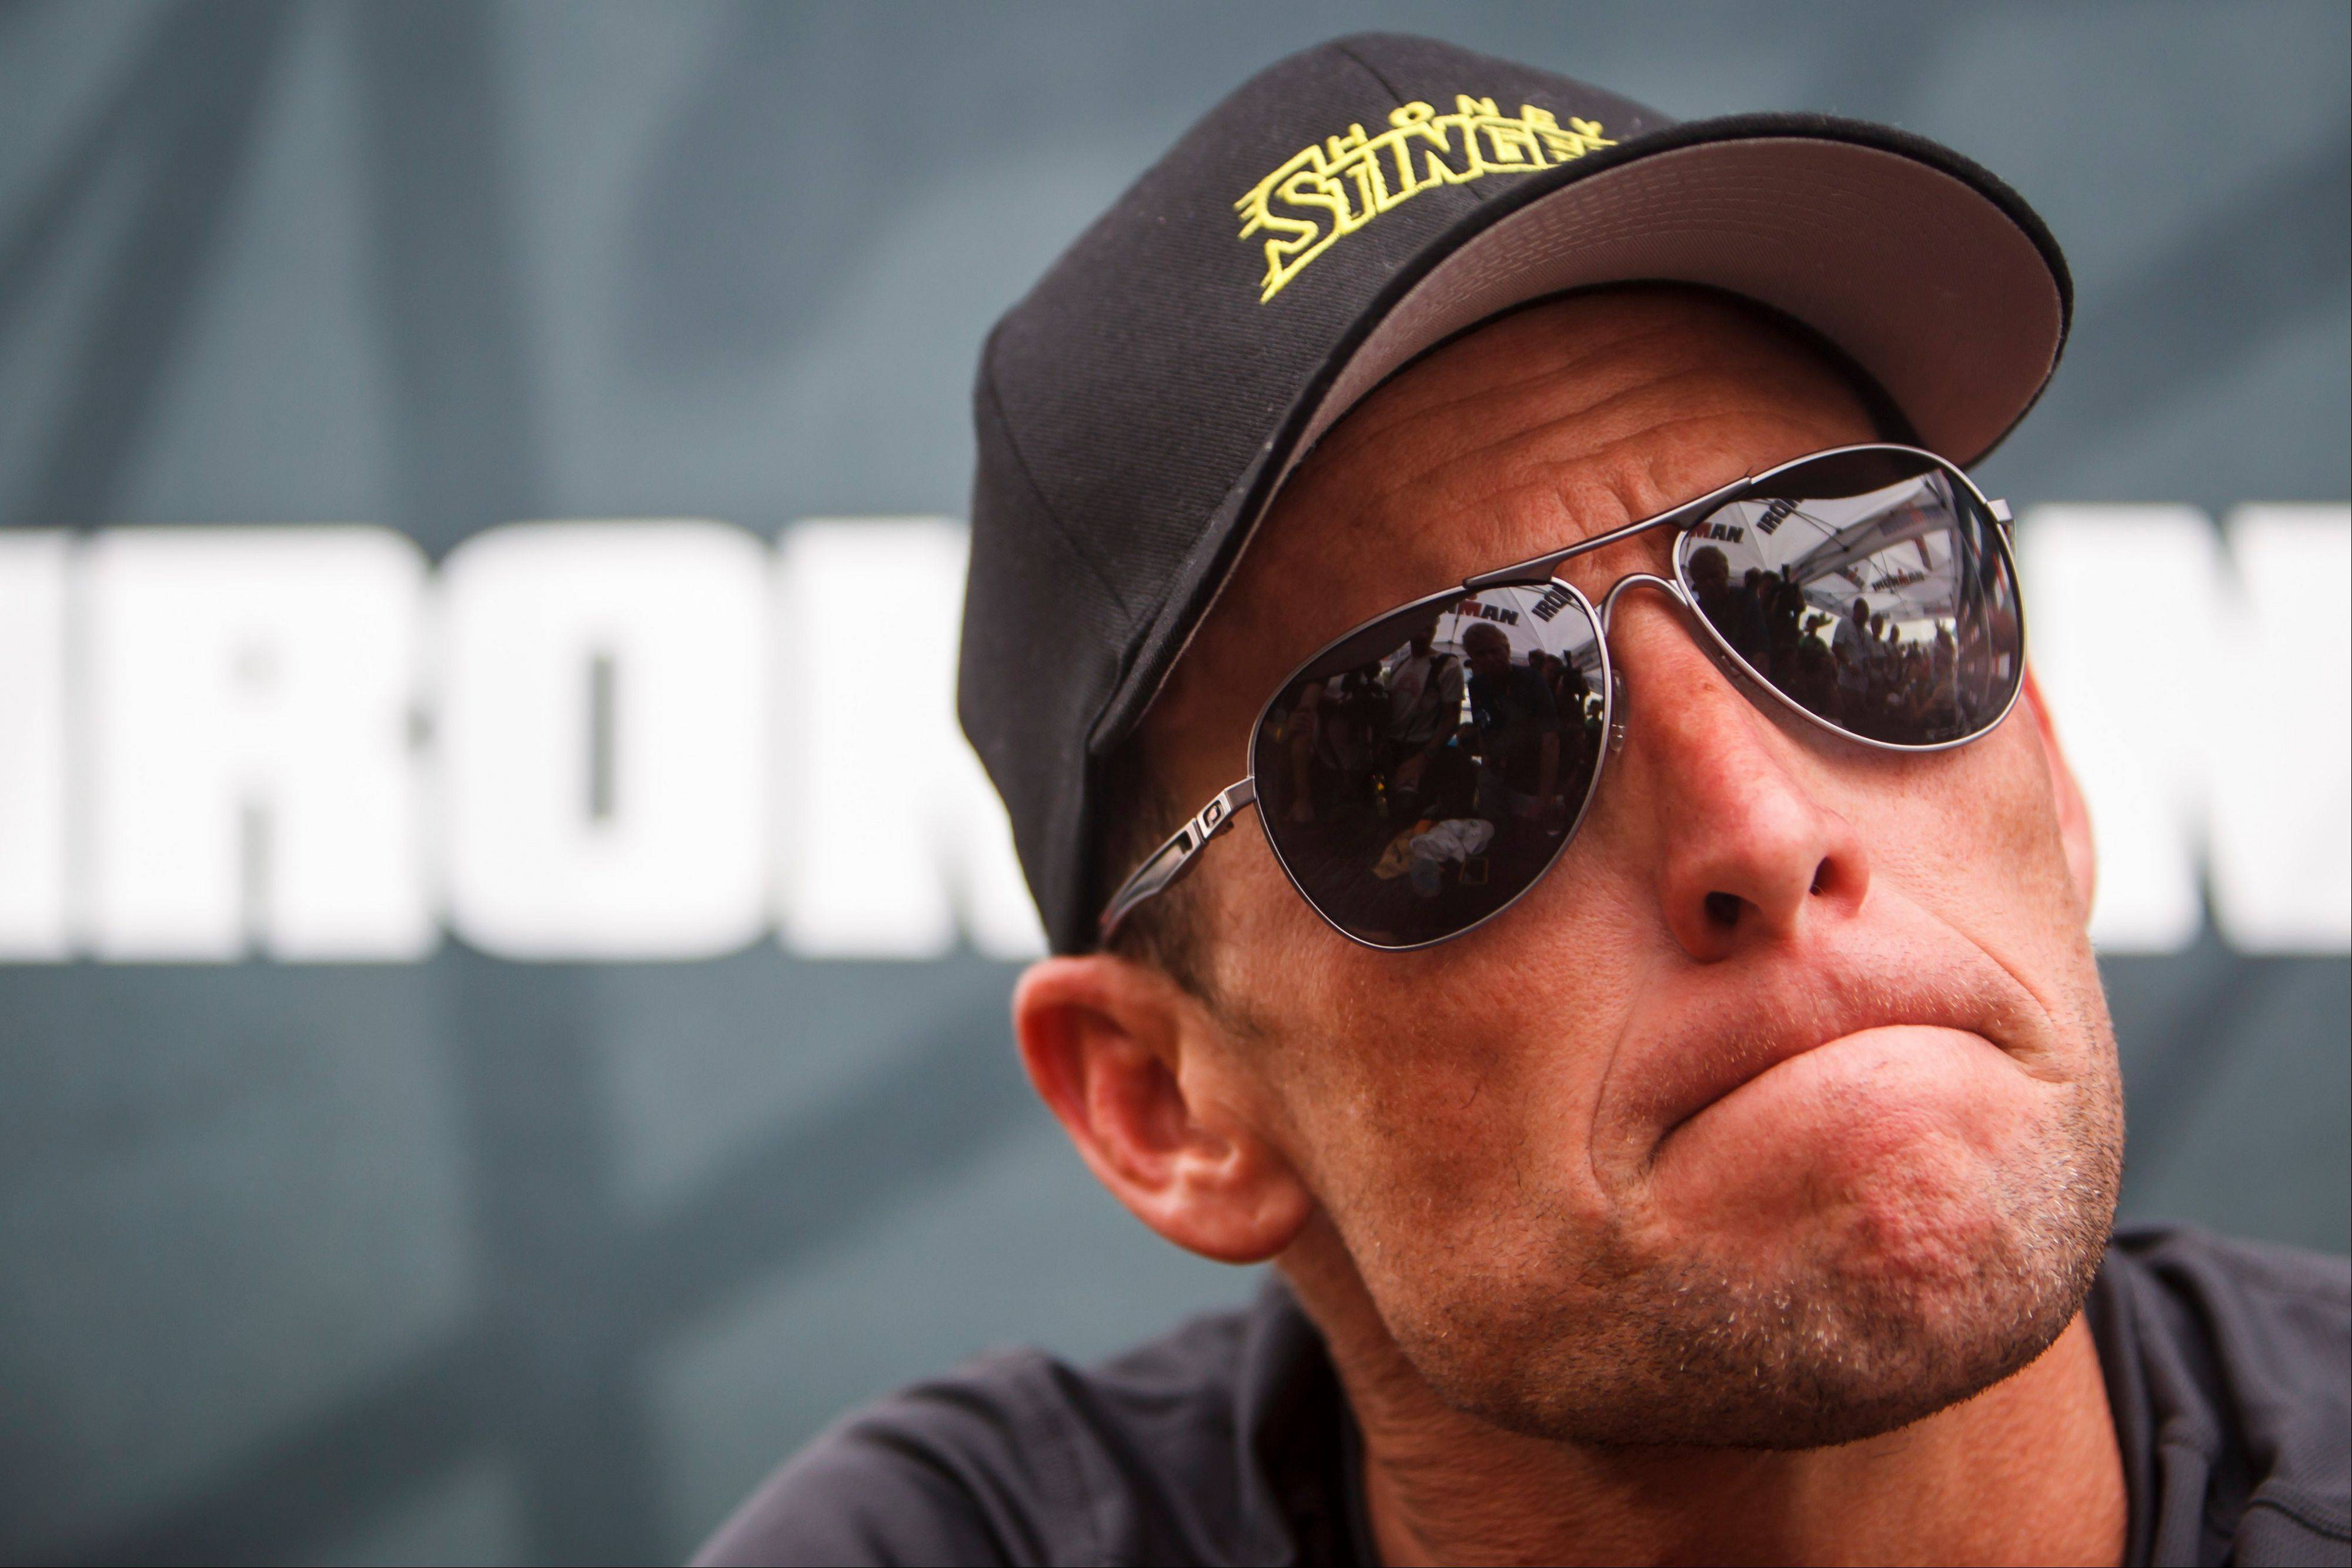 This April 1, 2012 file photo shows seven-time Tour de France champion Lance Armstrong grimacing during a news conference after the Memorial Hermann Ironman 70.3 Texas triathlon in Galveston, Texas. A federal judge in Austin, Texas, has thrown out Lance Armstrong's lawsuit against the U.S. Anti-Doping Agency, an attempt to stop the drug case against the seven-time Tour de France winner.